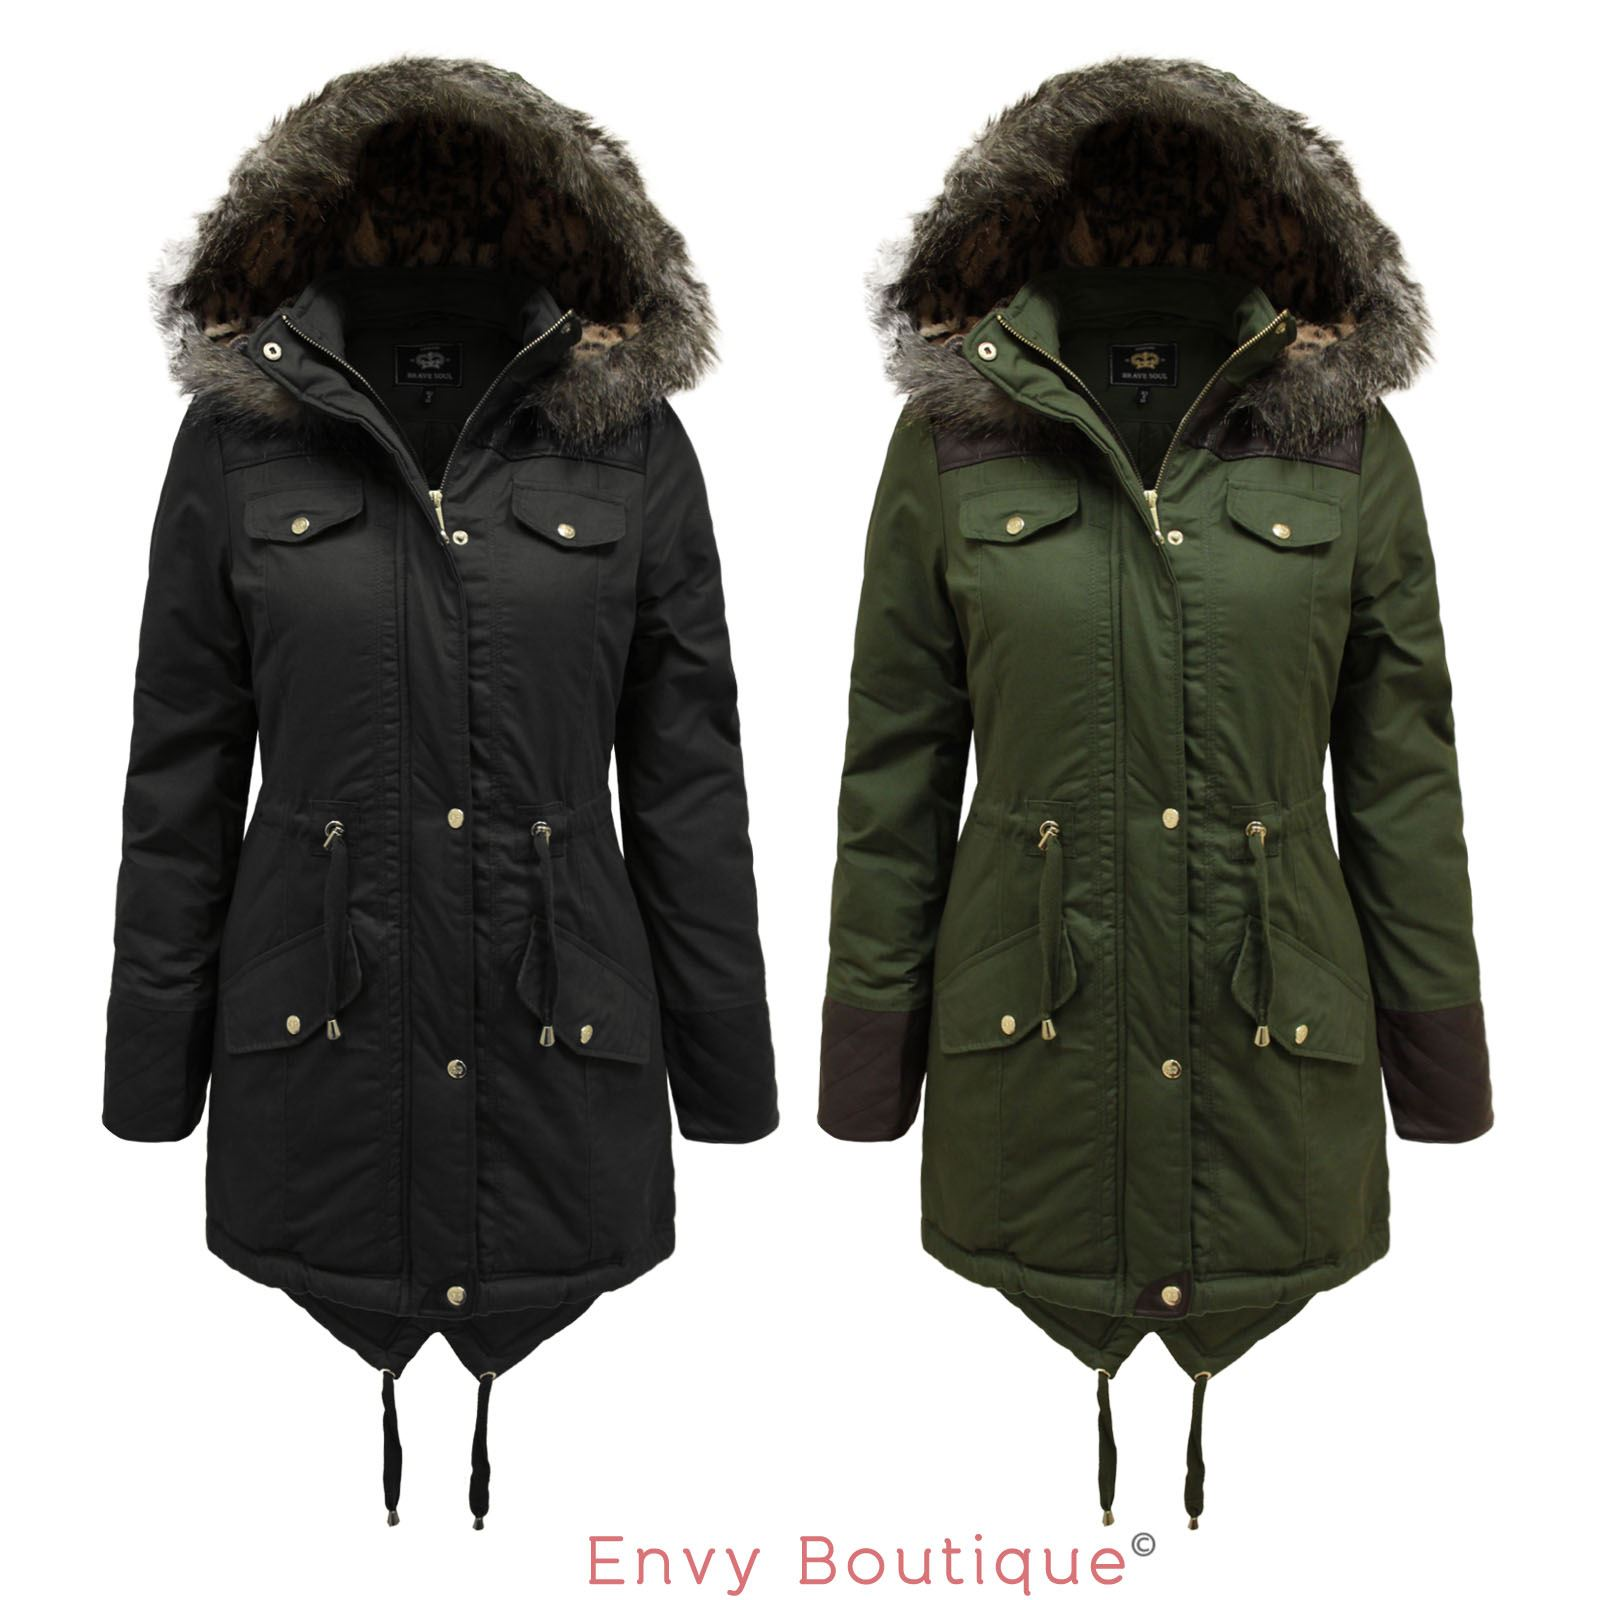 Womens Fishtail Parka Coats - JacketIn